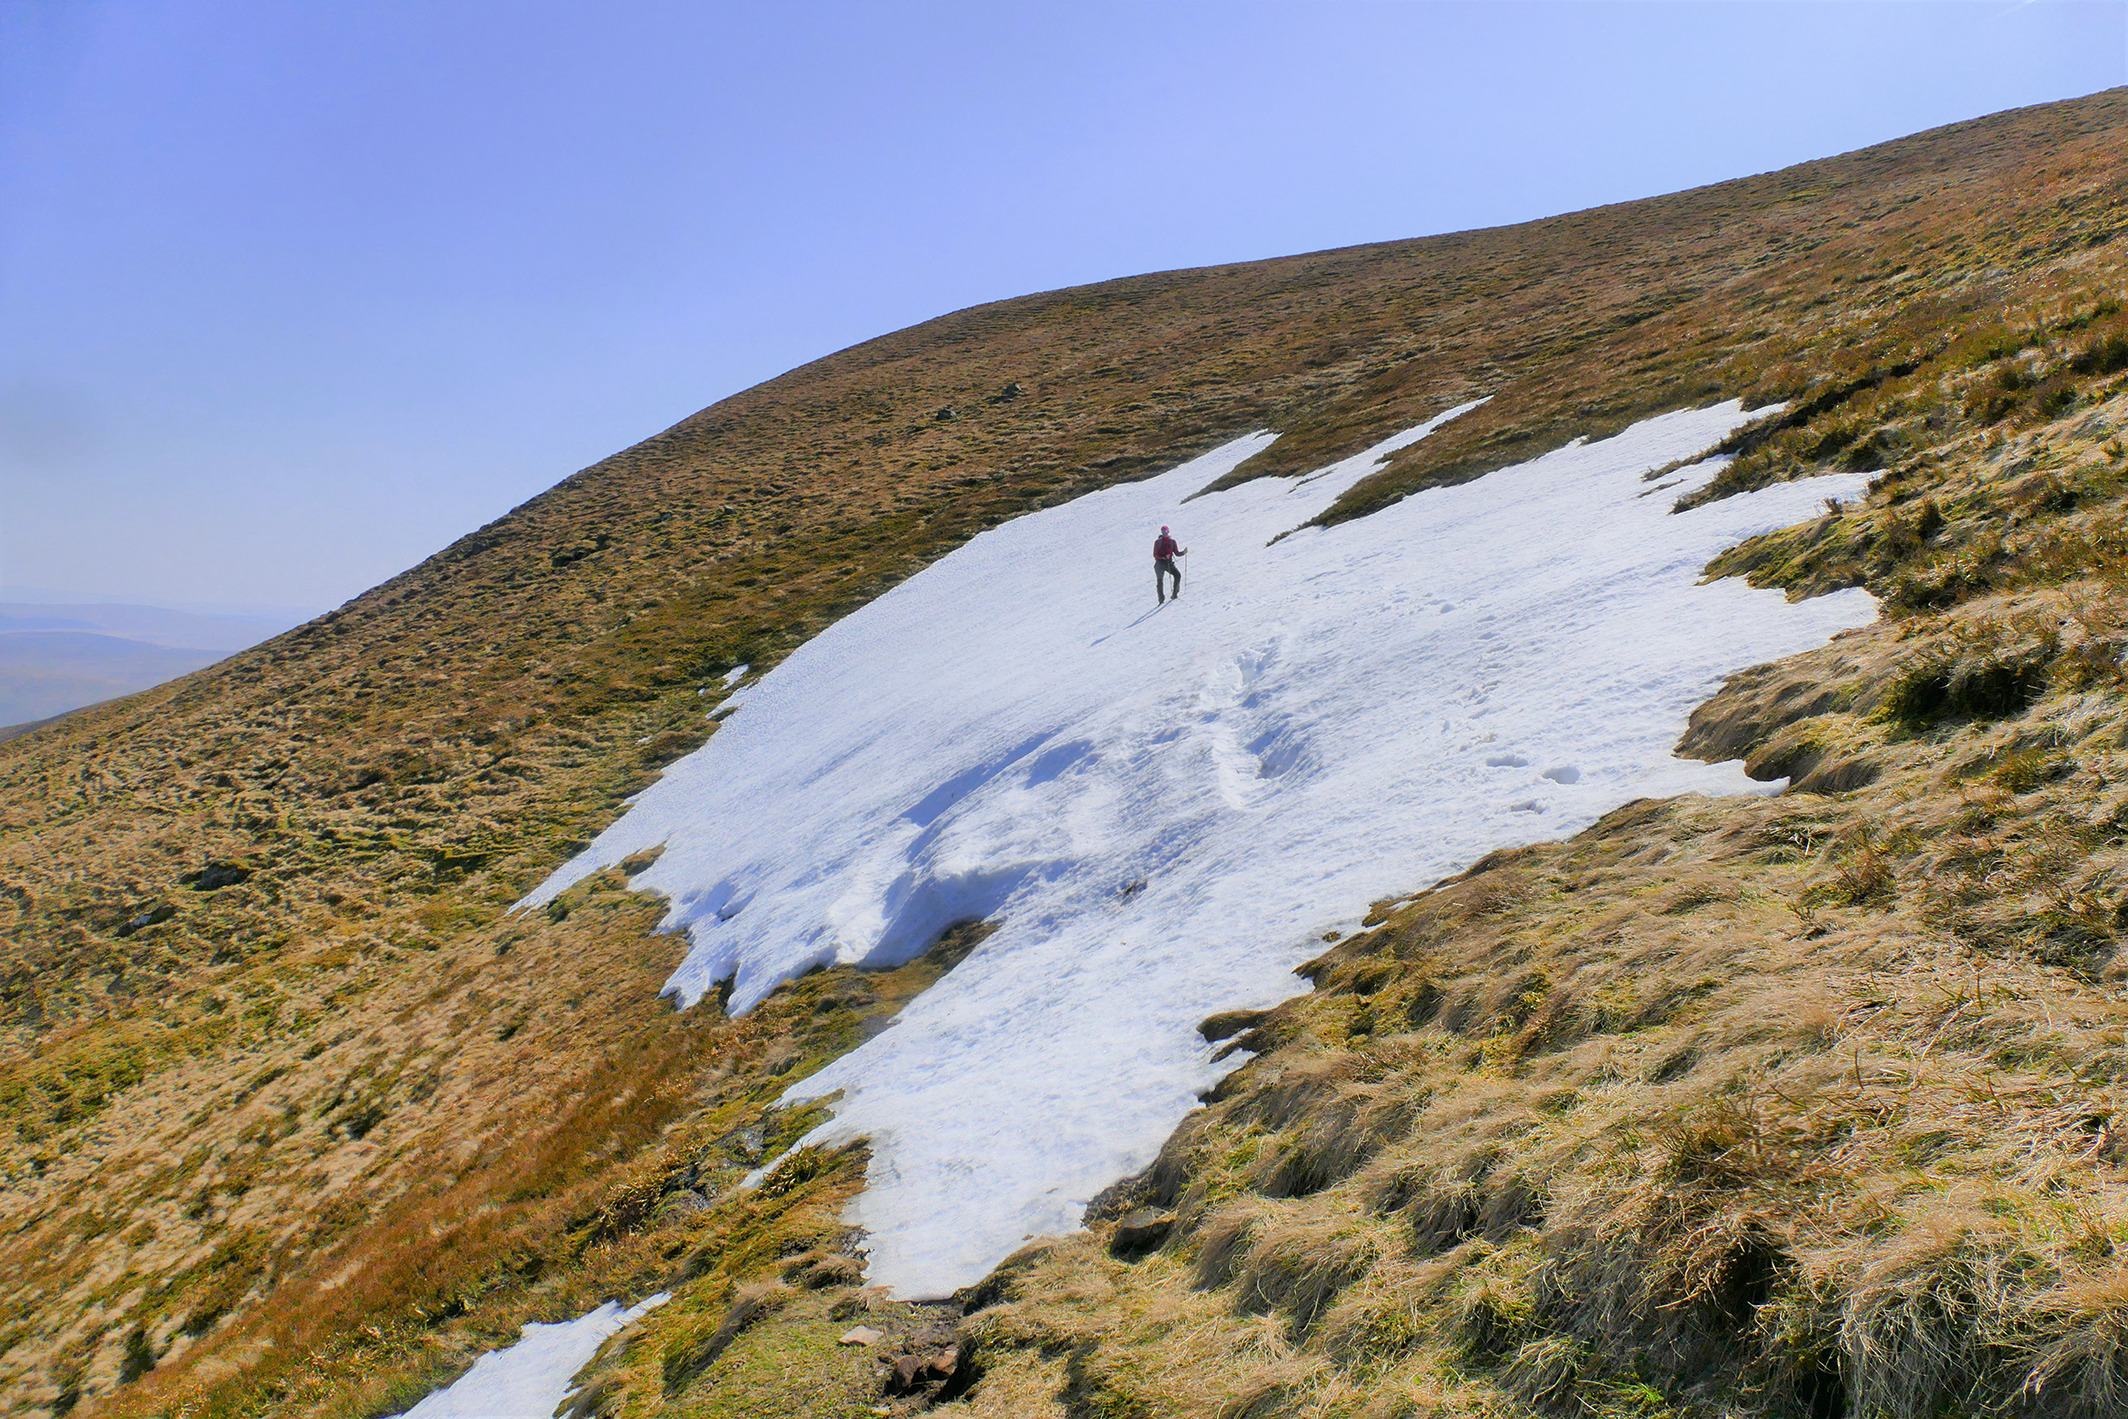 Author Iain Cameron stands on the last patch of snow south of the Central Belt, at Cramalt Craig on 22 April 2019. On this date, it was 50m long. (© Iain Cameron.)